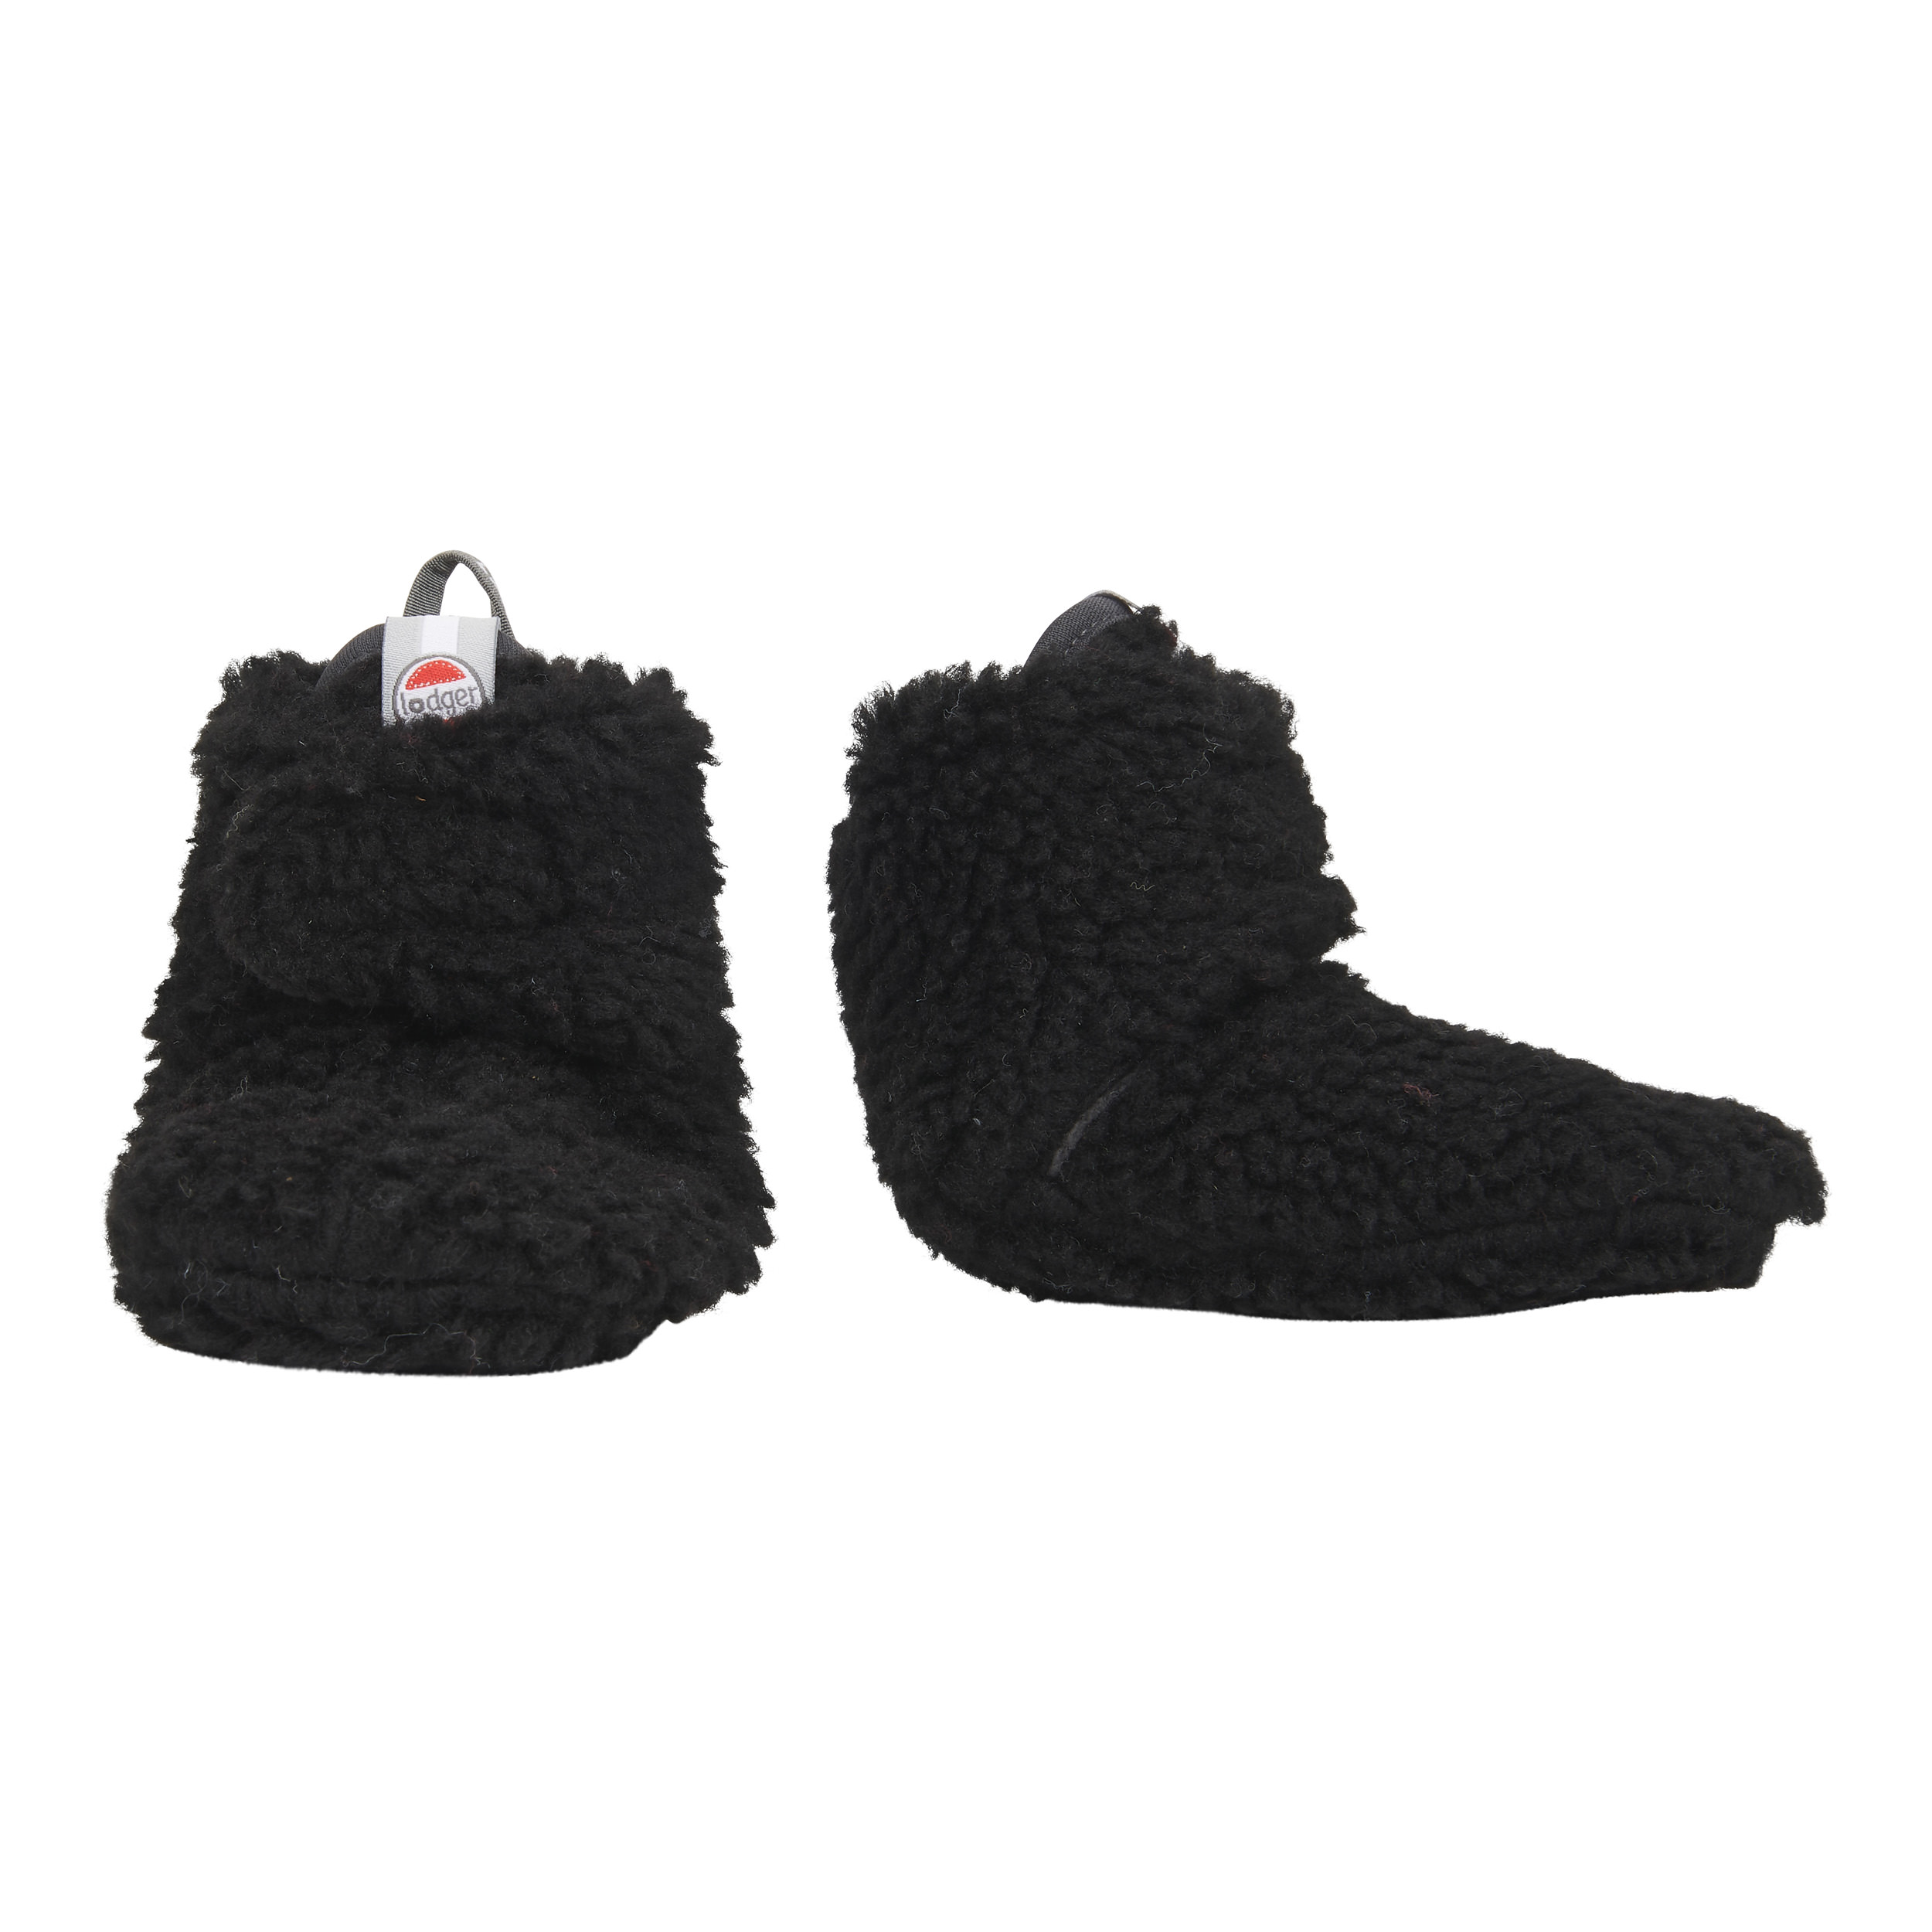 Lodger Teddy baby booties lined with